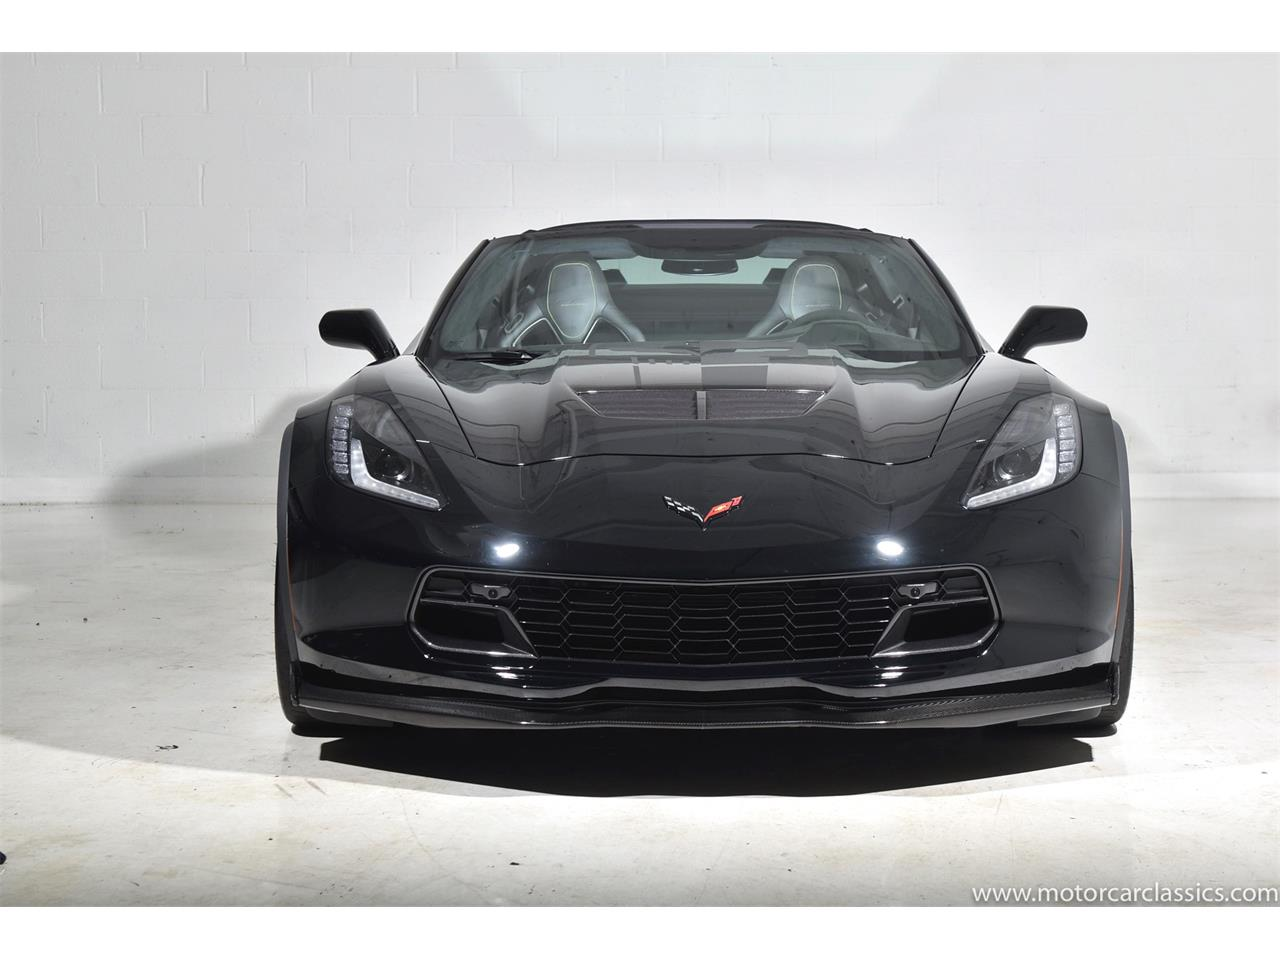 2016 Chevrolet Corvette (CC-1368049) for sale in Farmingdale, New York